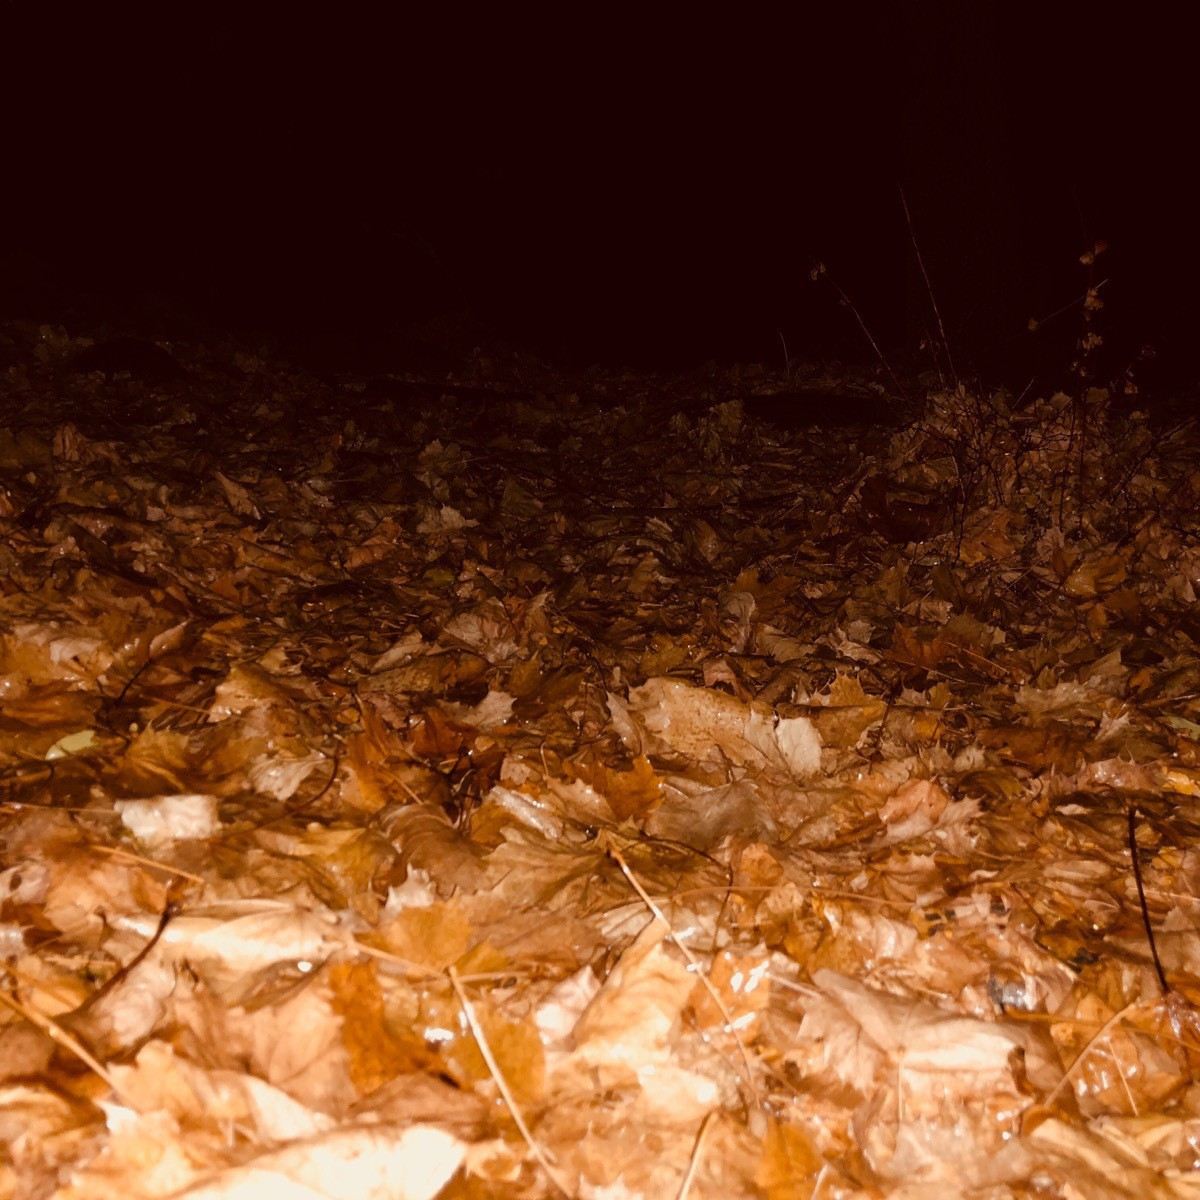 Wet leaves at night